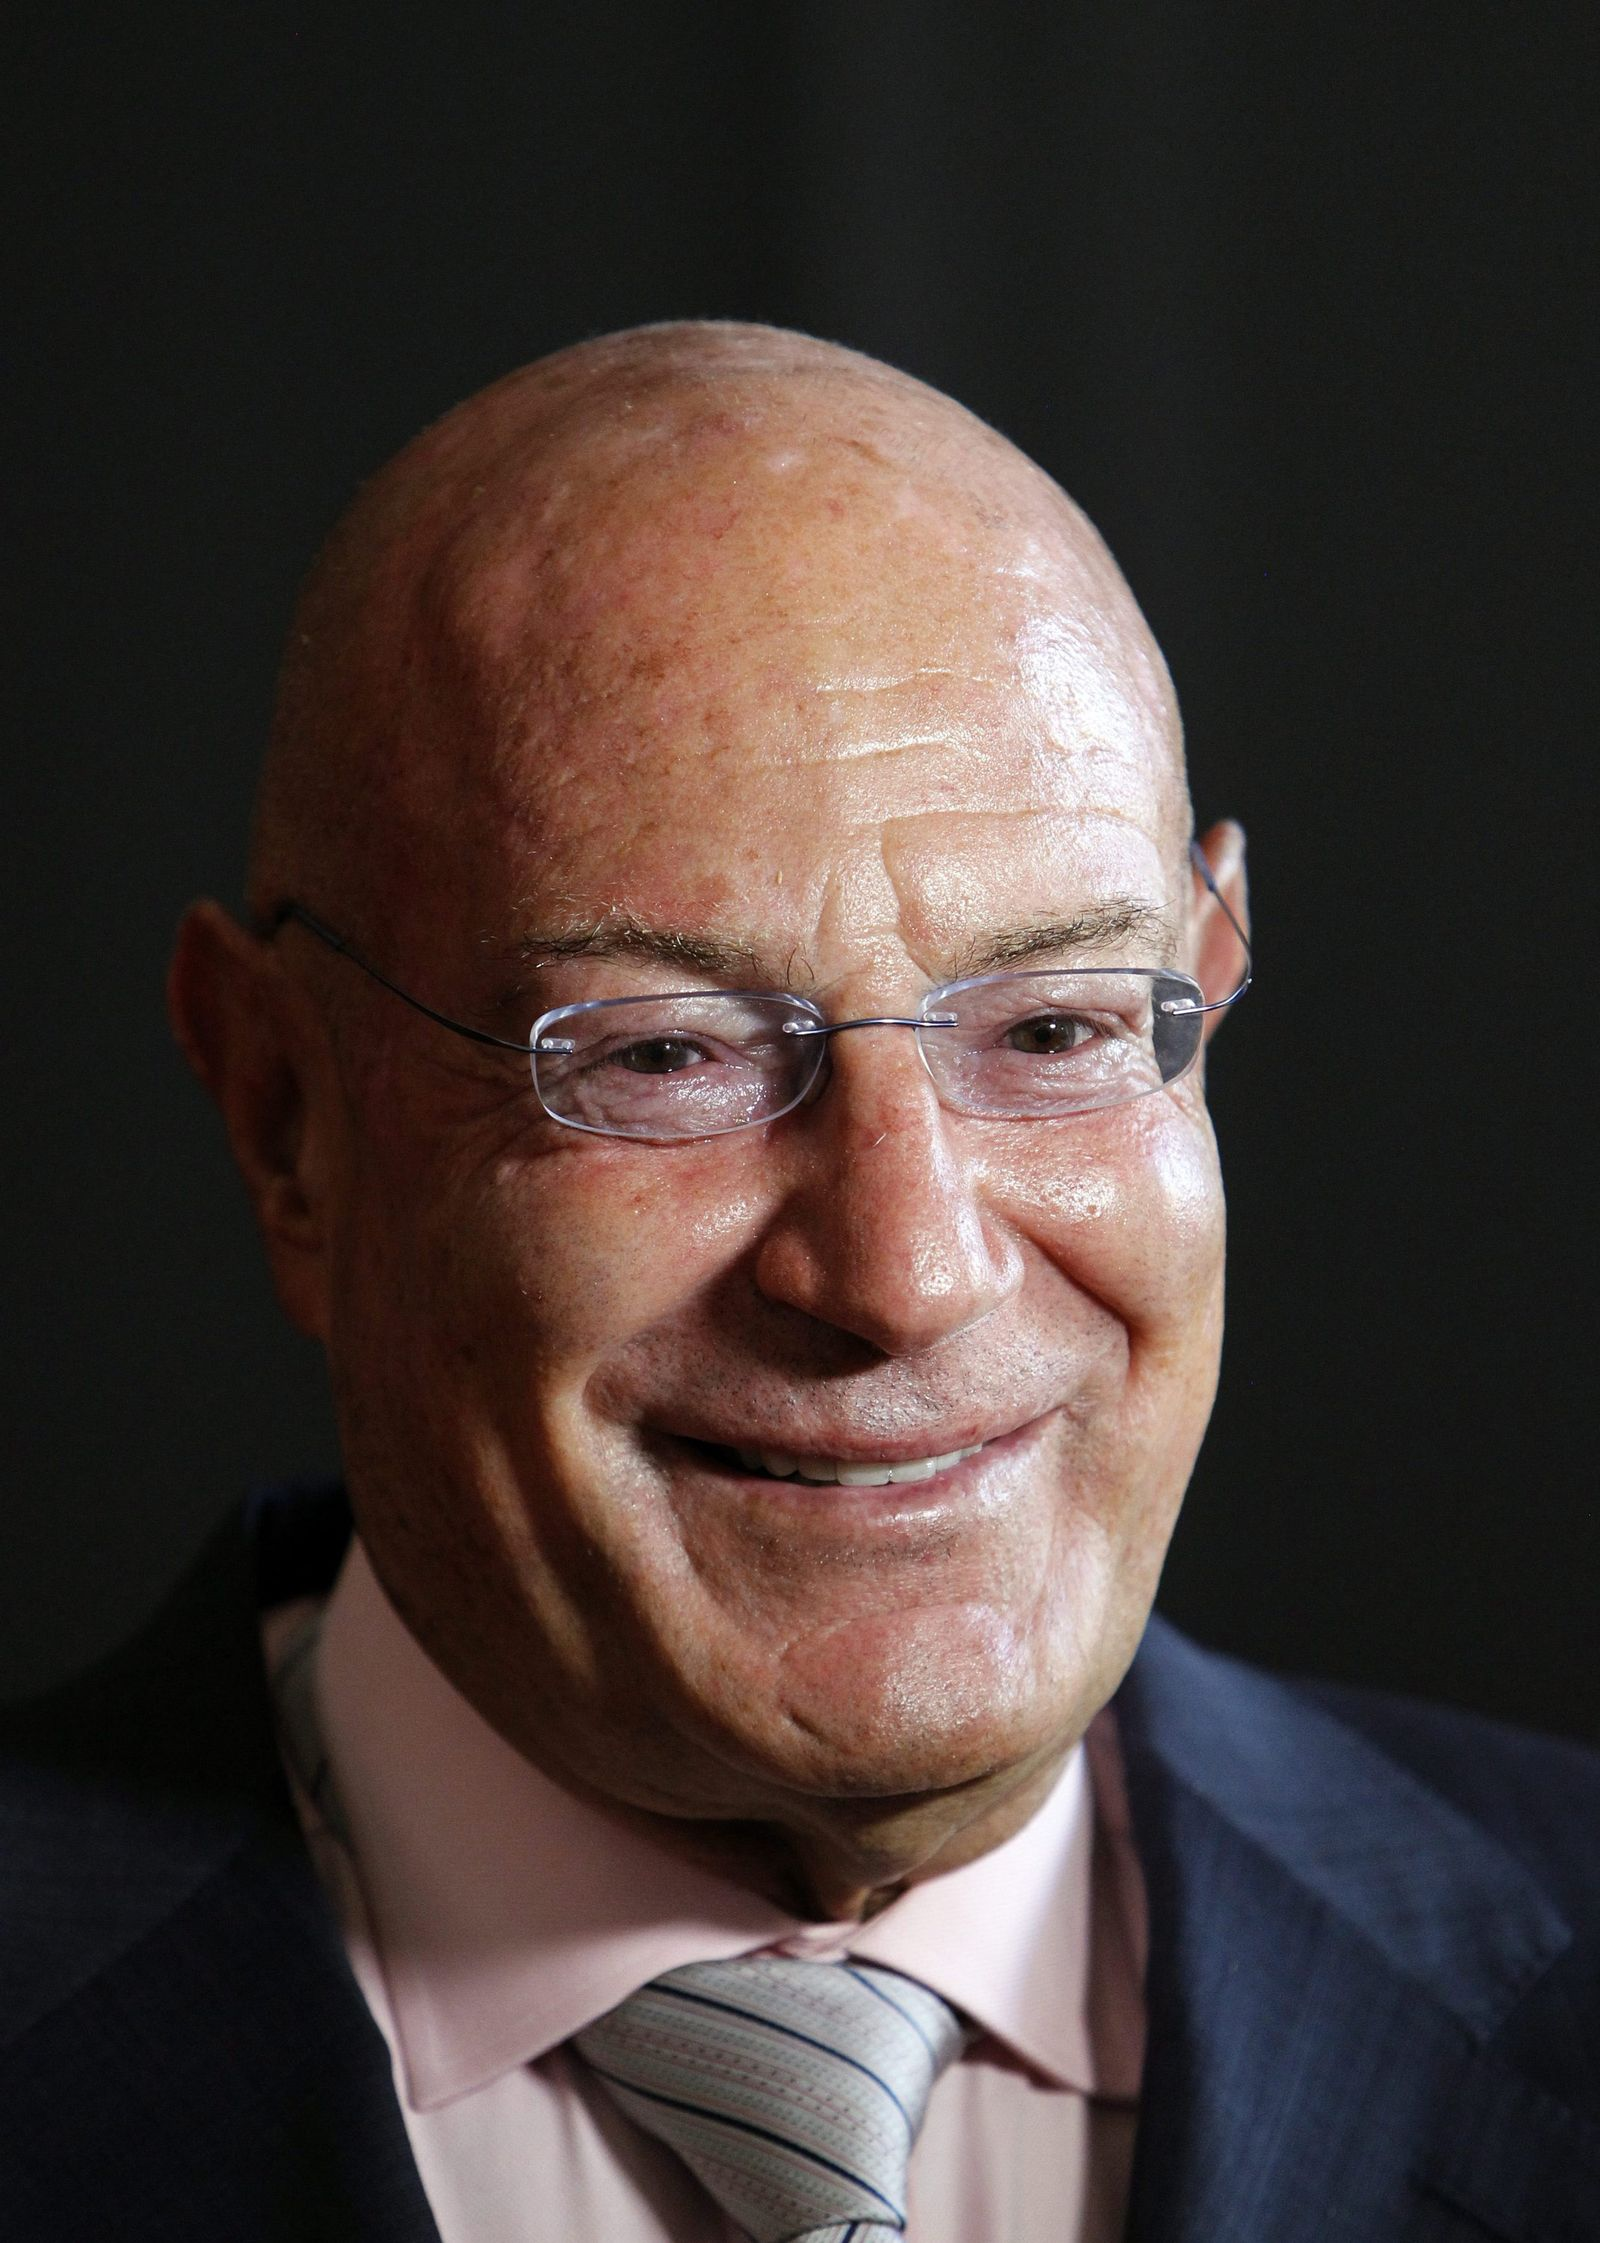 Arnon Milchan has revealed that he worked as an undercover agent